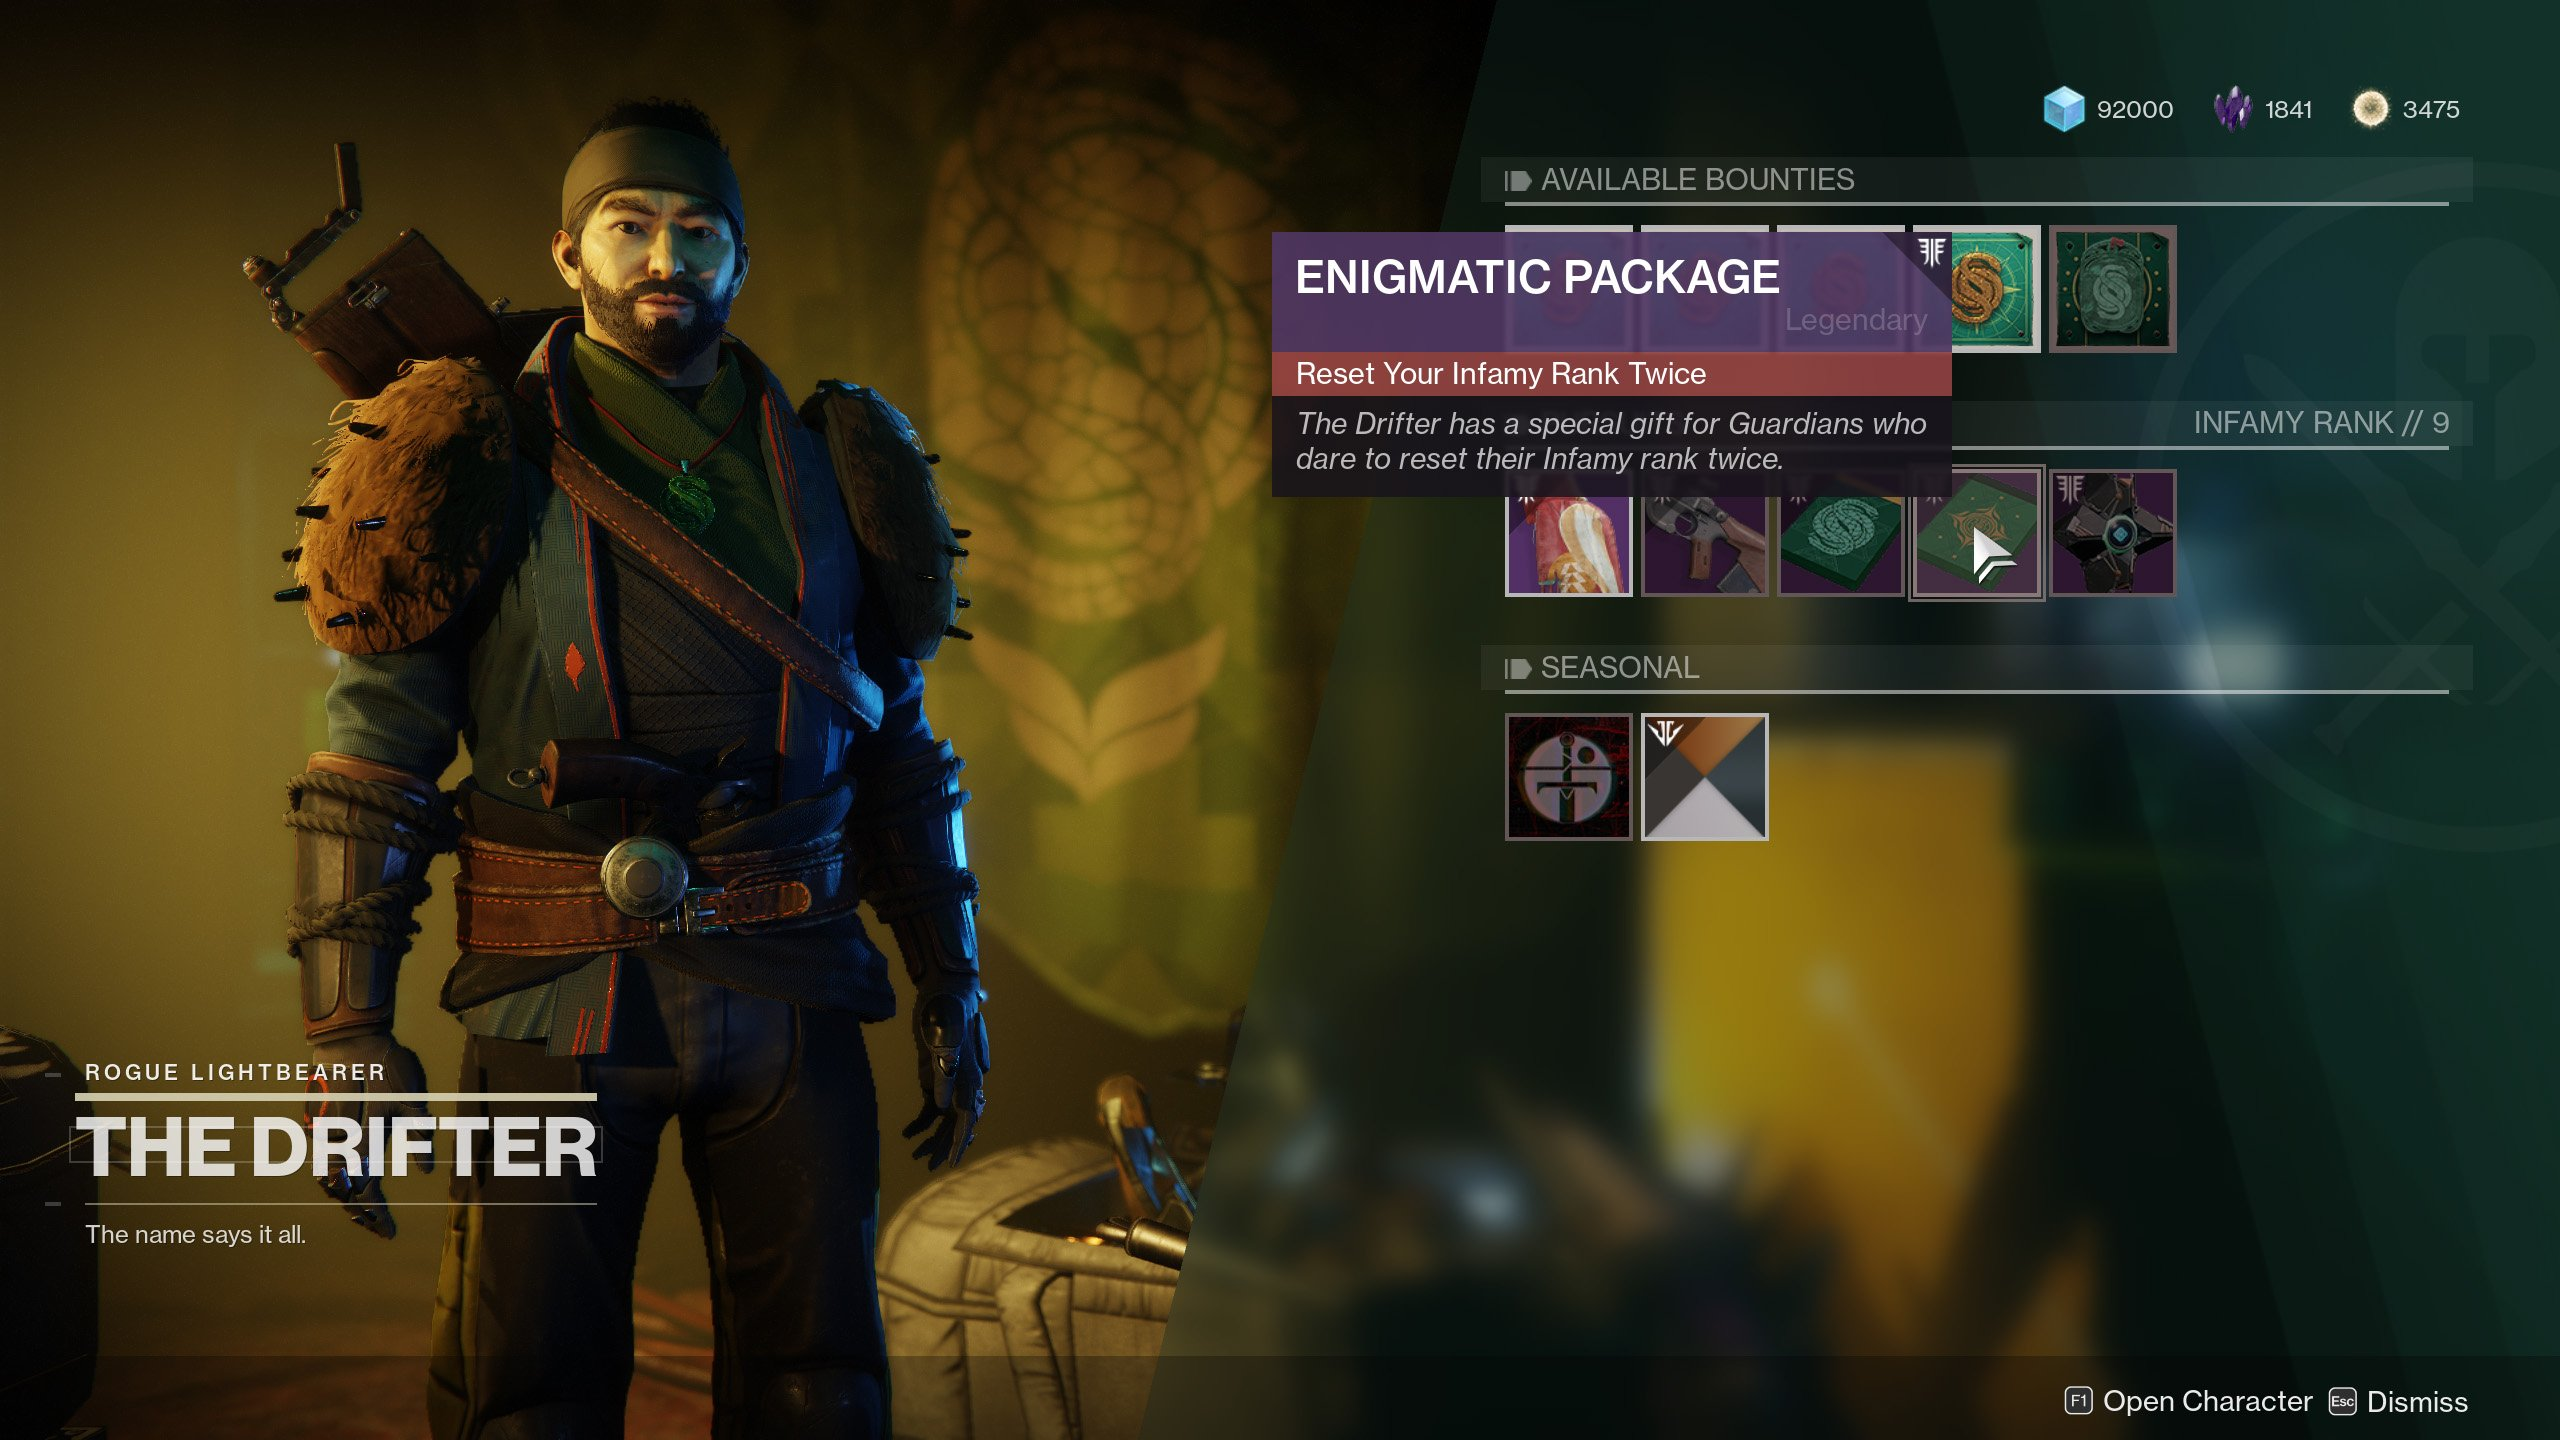 Enigmatic Package Drifter Destiny 2